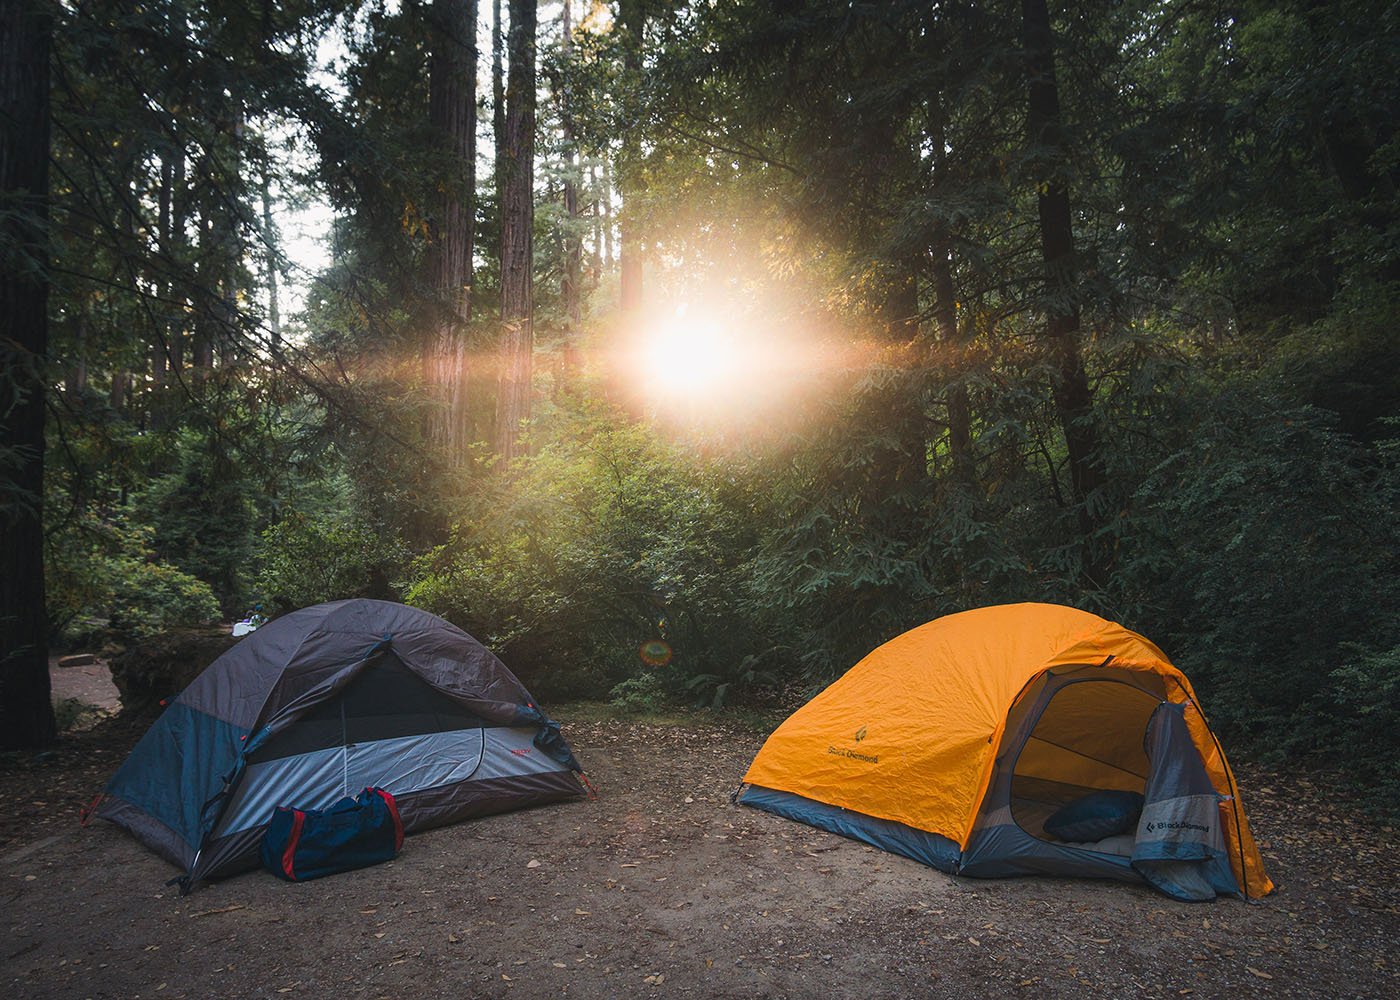 Camping Has Grown in Popularity Due to COVID. Here Are 12 Things to Purchase Before Your Fall Camping Trip Thumbnail